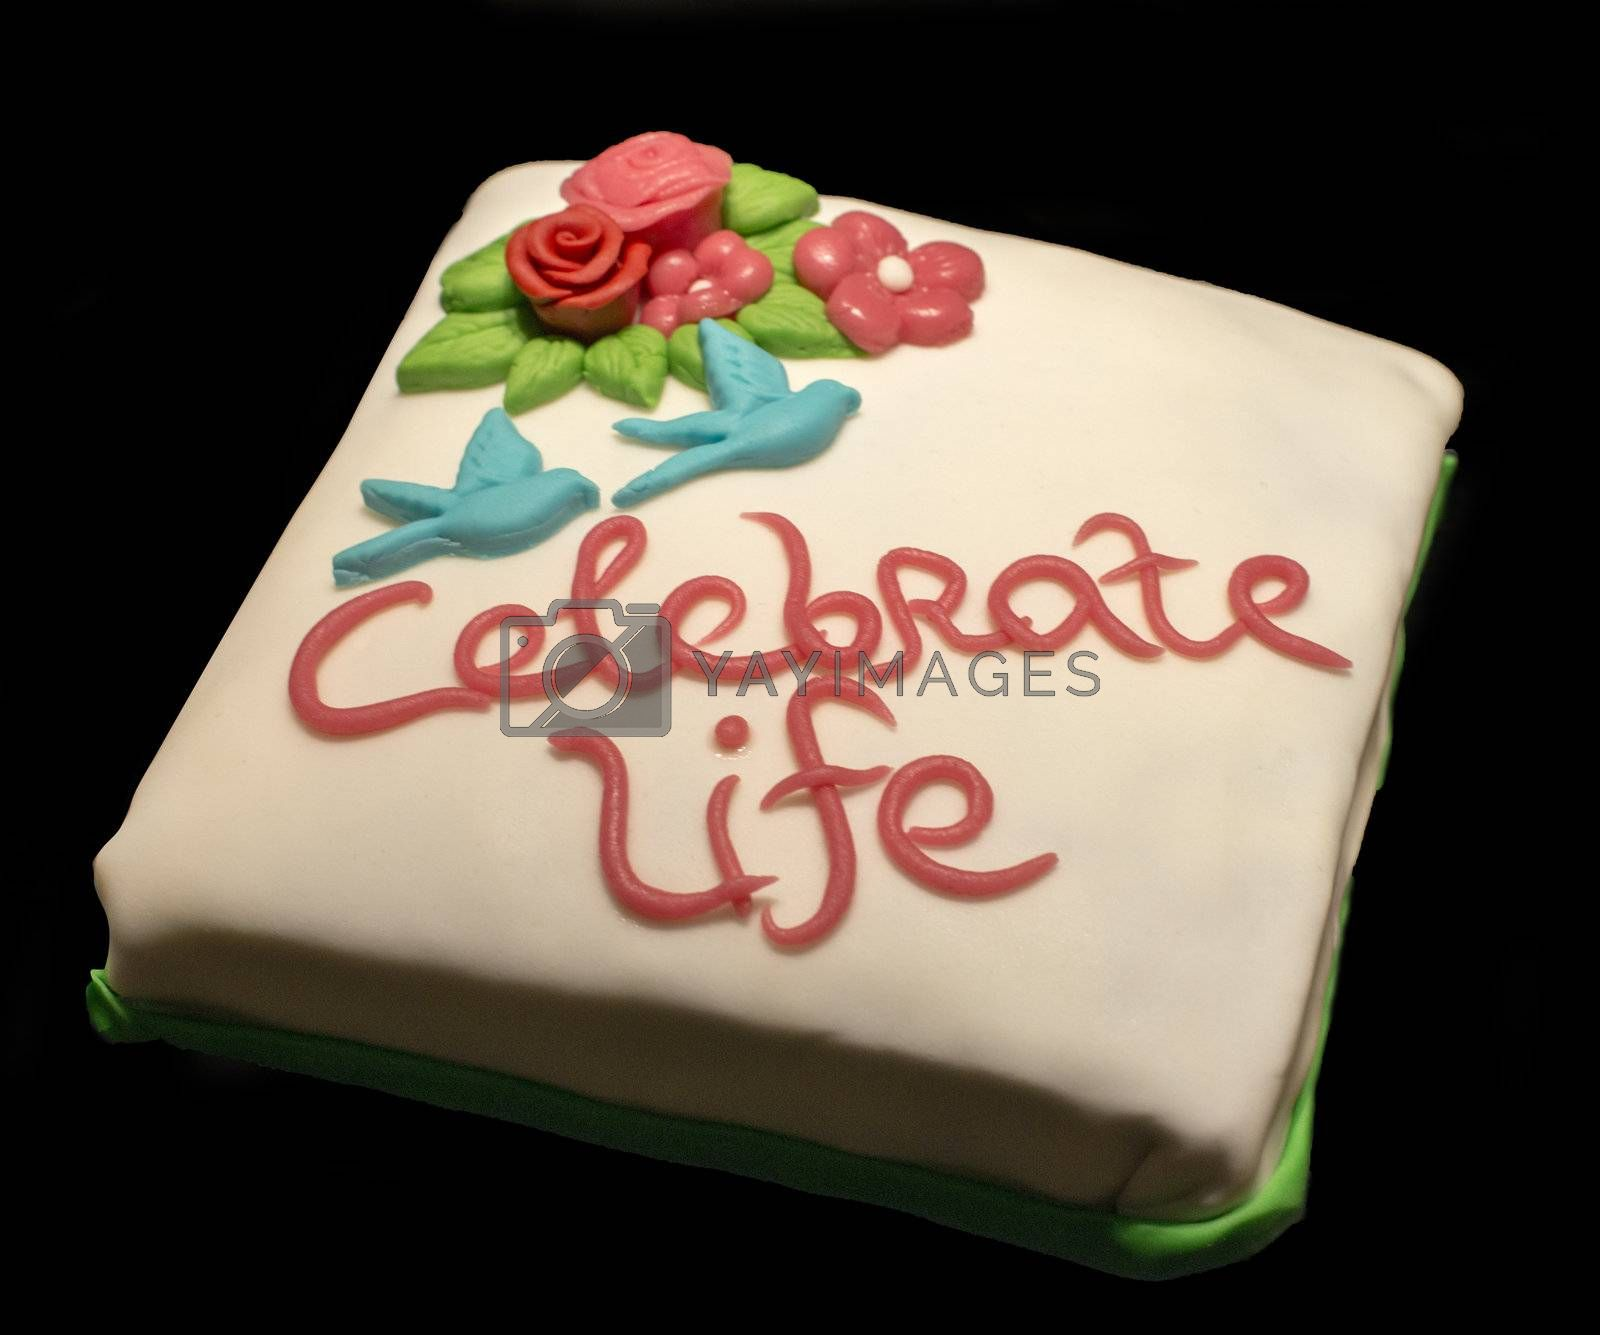 celebrate life cake by compuinfoto